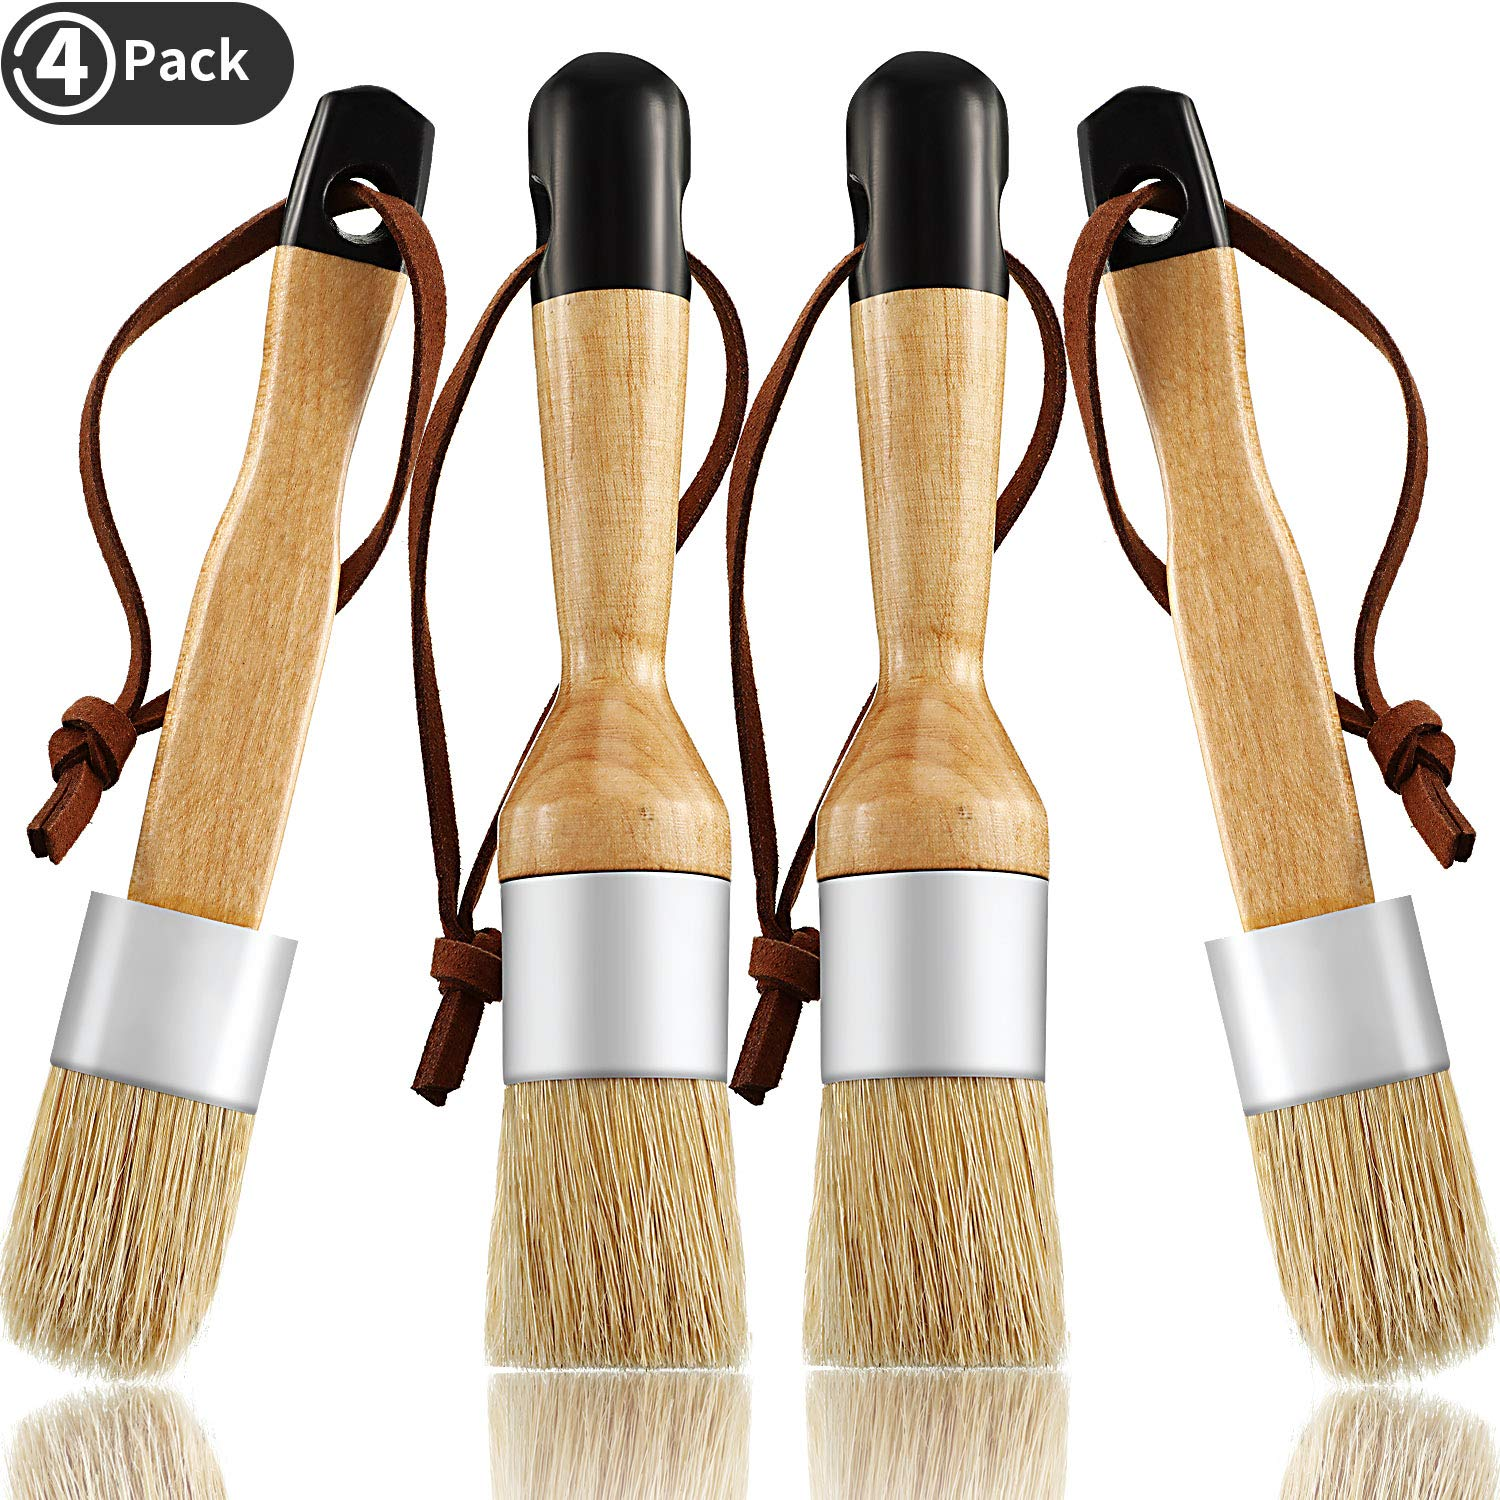 4 Pieces Chalk and Wax Brushes Include Flat and Round Chalked Paint Brush with Bristles, Multi-use Wax and Stencil Brushes for Chairs, Dressers, Cabinets and Other Wood Furniture by Boao